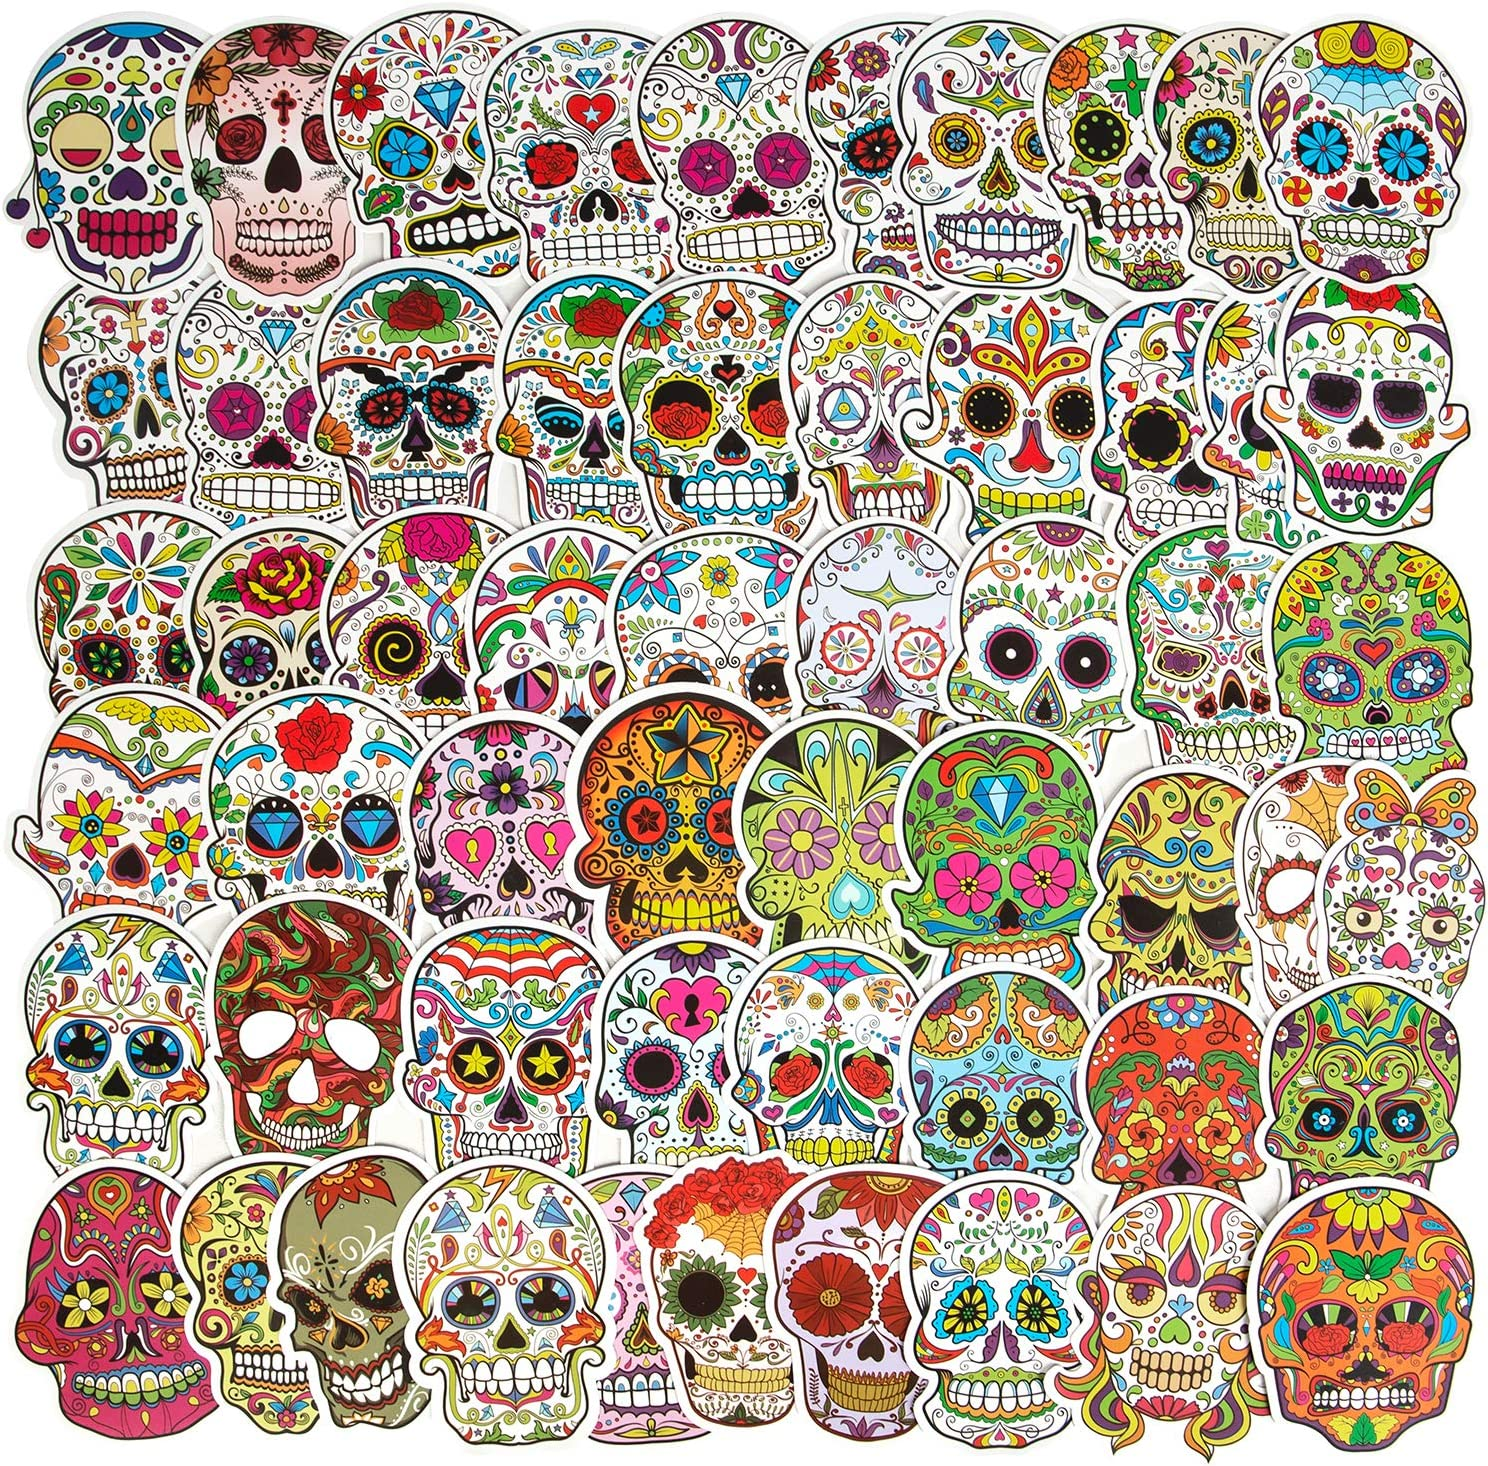 Mexican Day of The Dead Stickers, Sugar Skull Stickers(50pcs), Waterproof Water Bottle Stickers Skateboard Stickers Laptop Stickers for Teens, Halloween Party Favor Supplies Luggage Bike Vinyl Decal